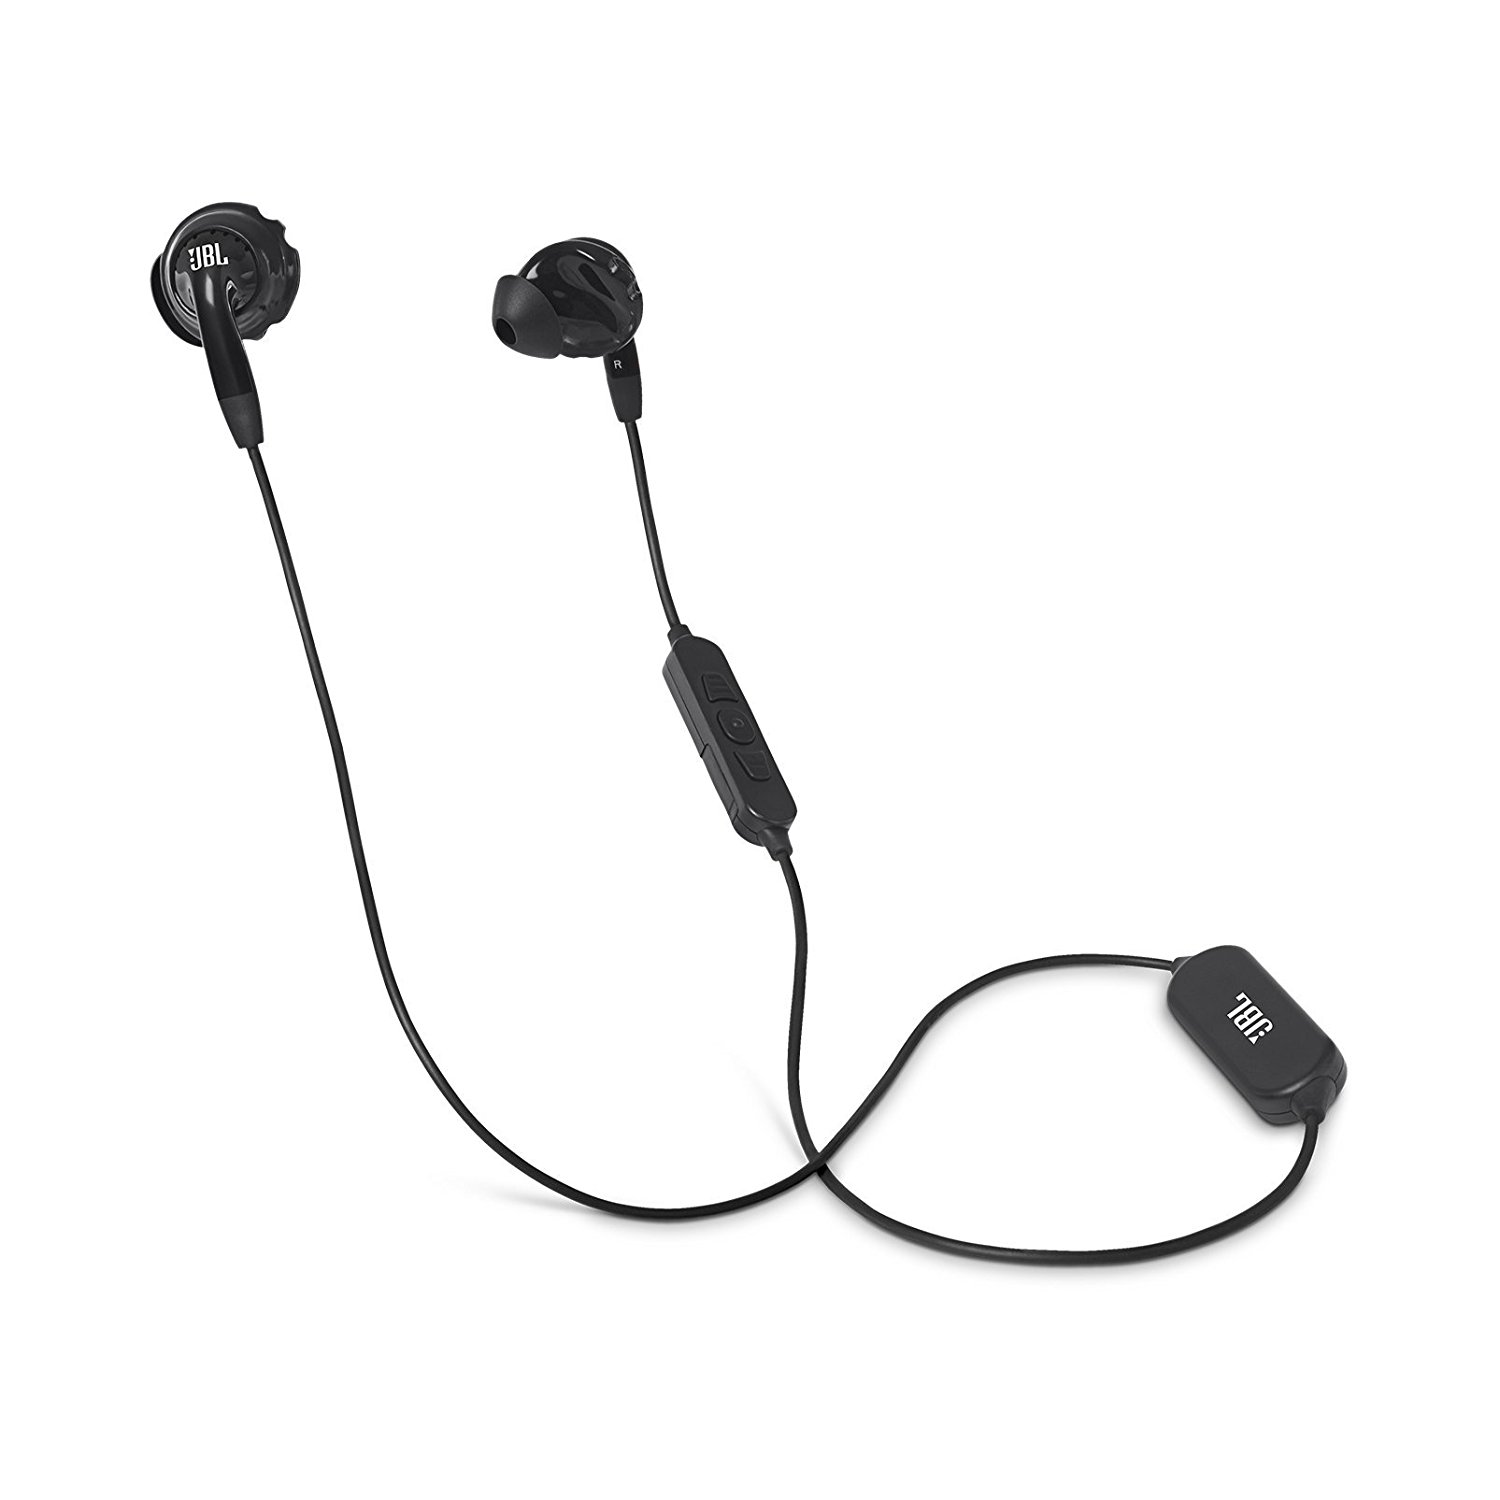 Image for JBL Inspire 500 In Ear Wireless Sport Headphones, Three-Button Remote Control from Circuit City